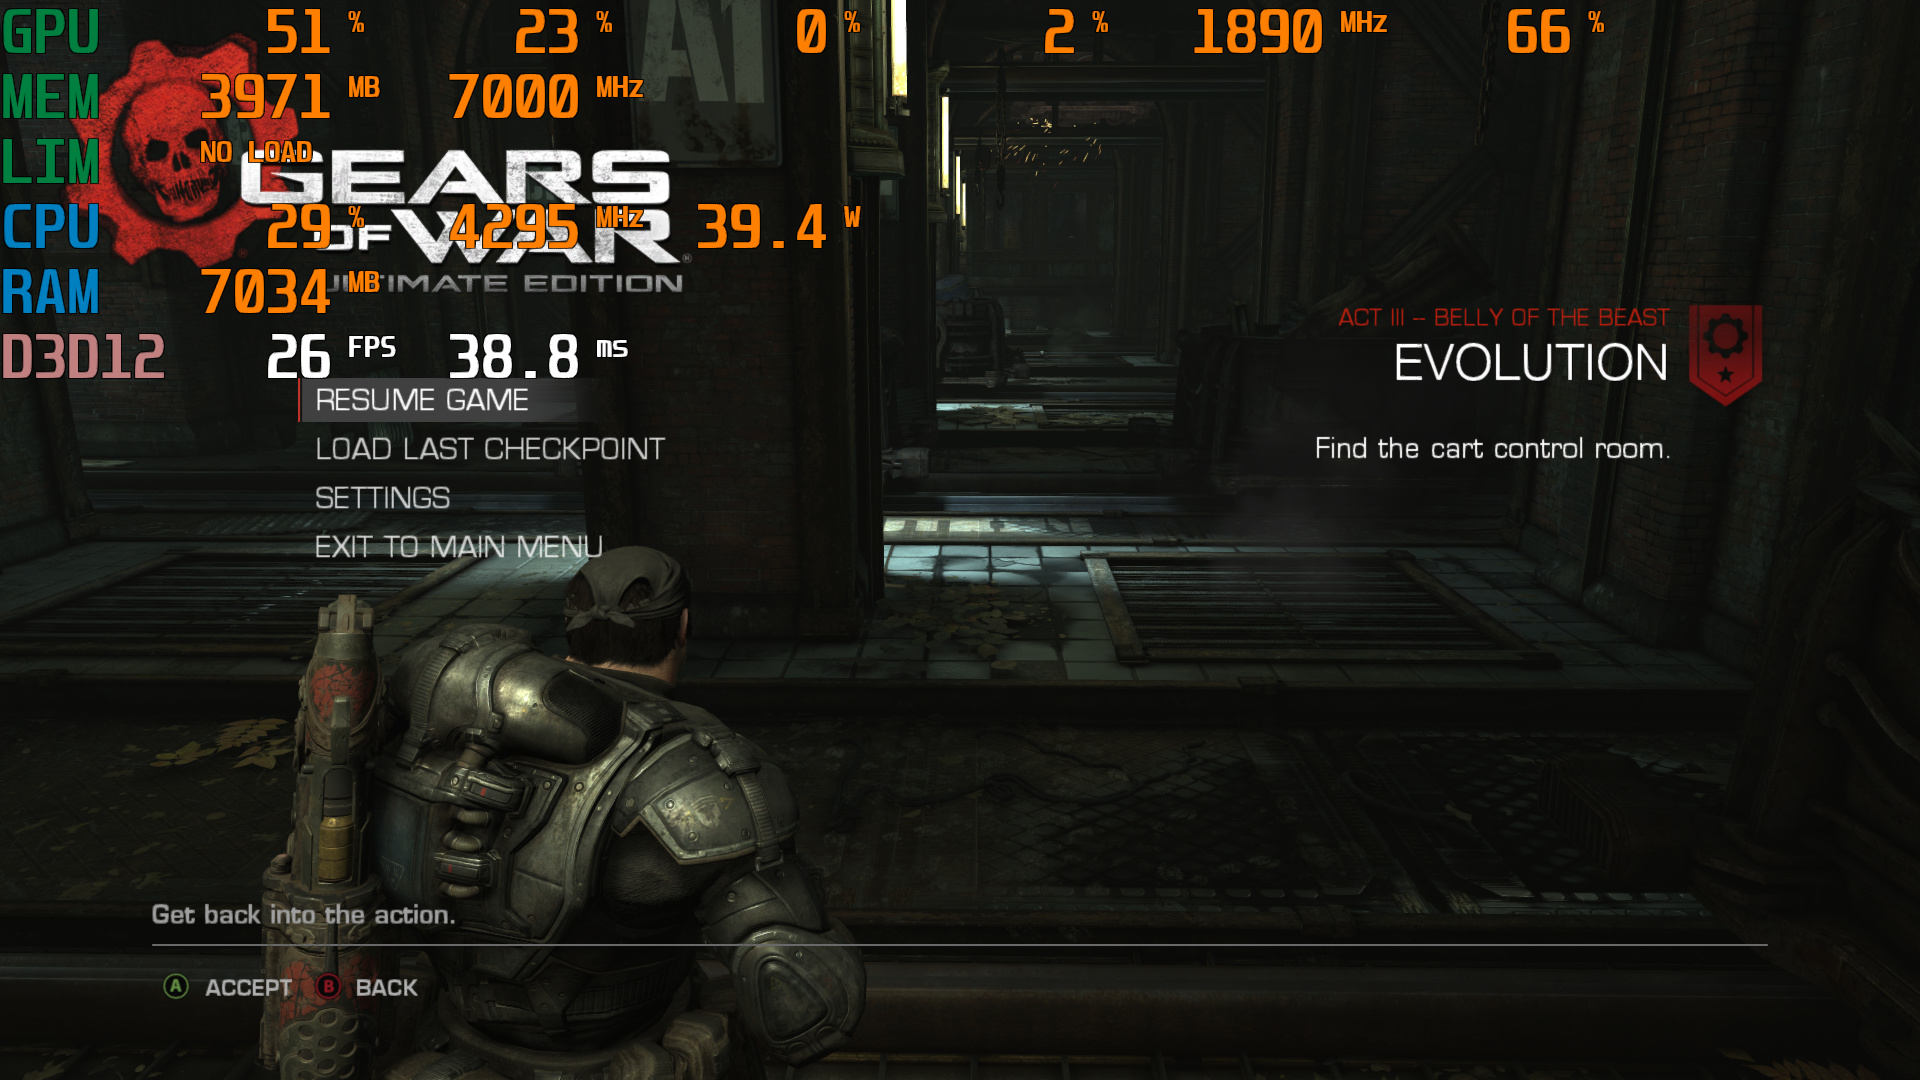 Gears of War Ultimate Edition Windows 10 drop fps after v 1809